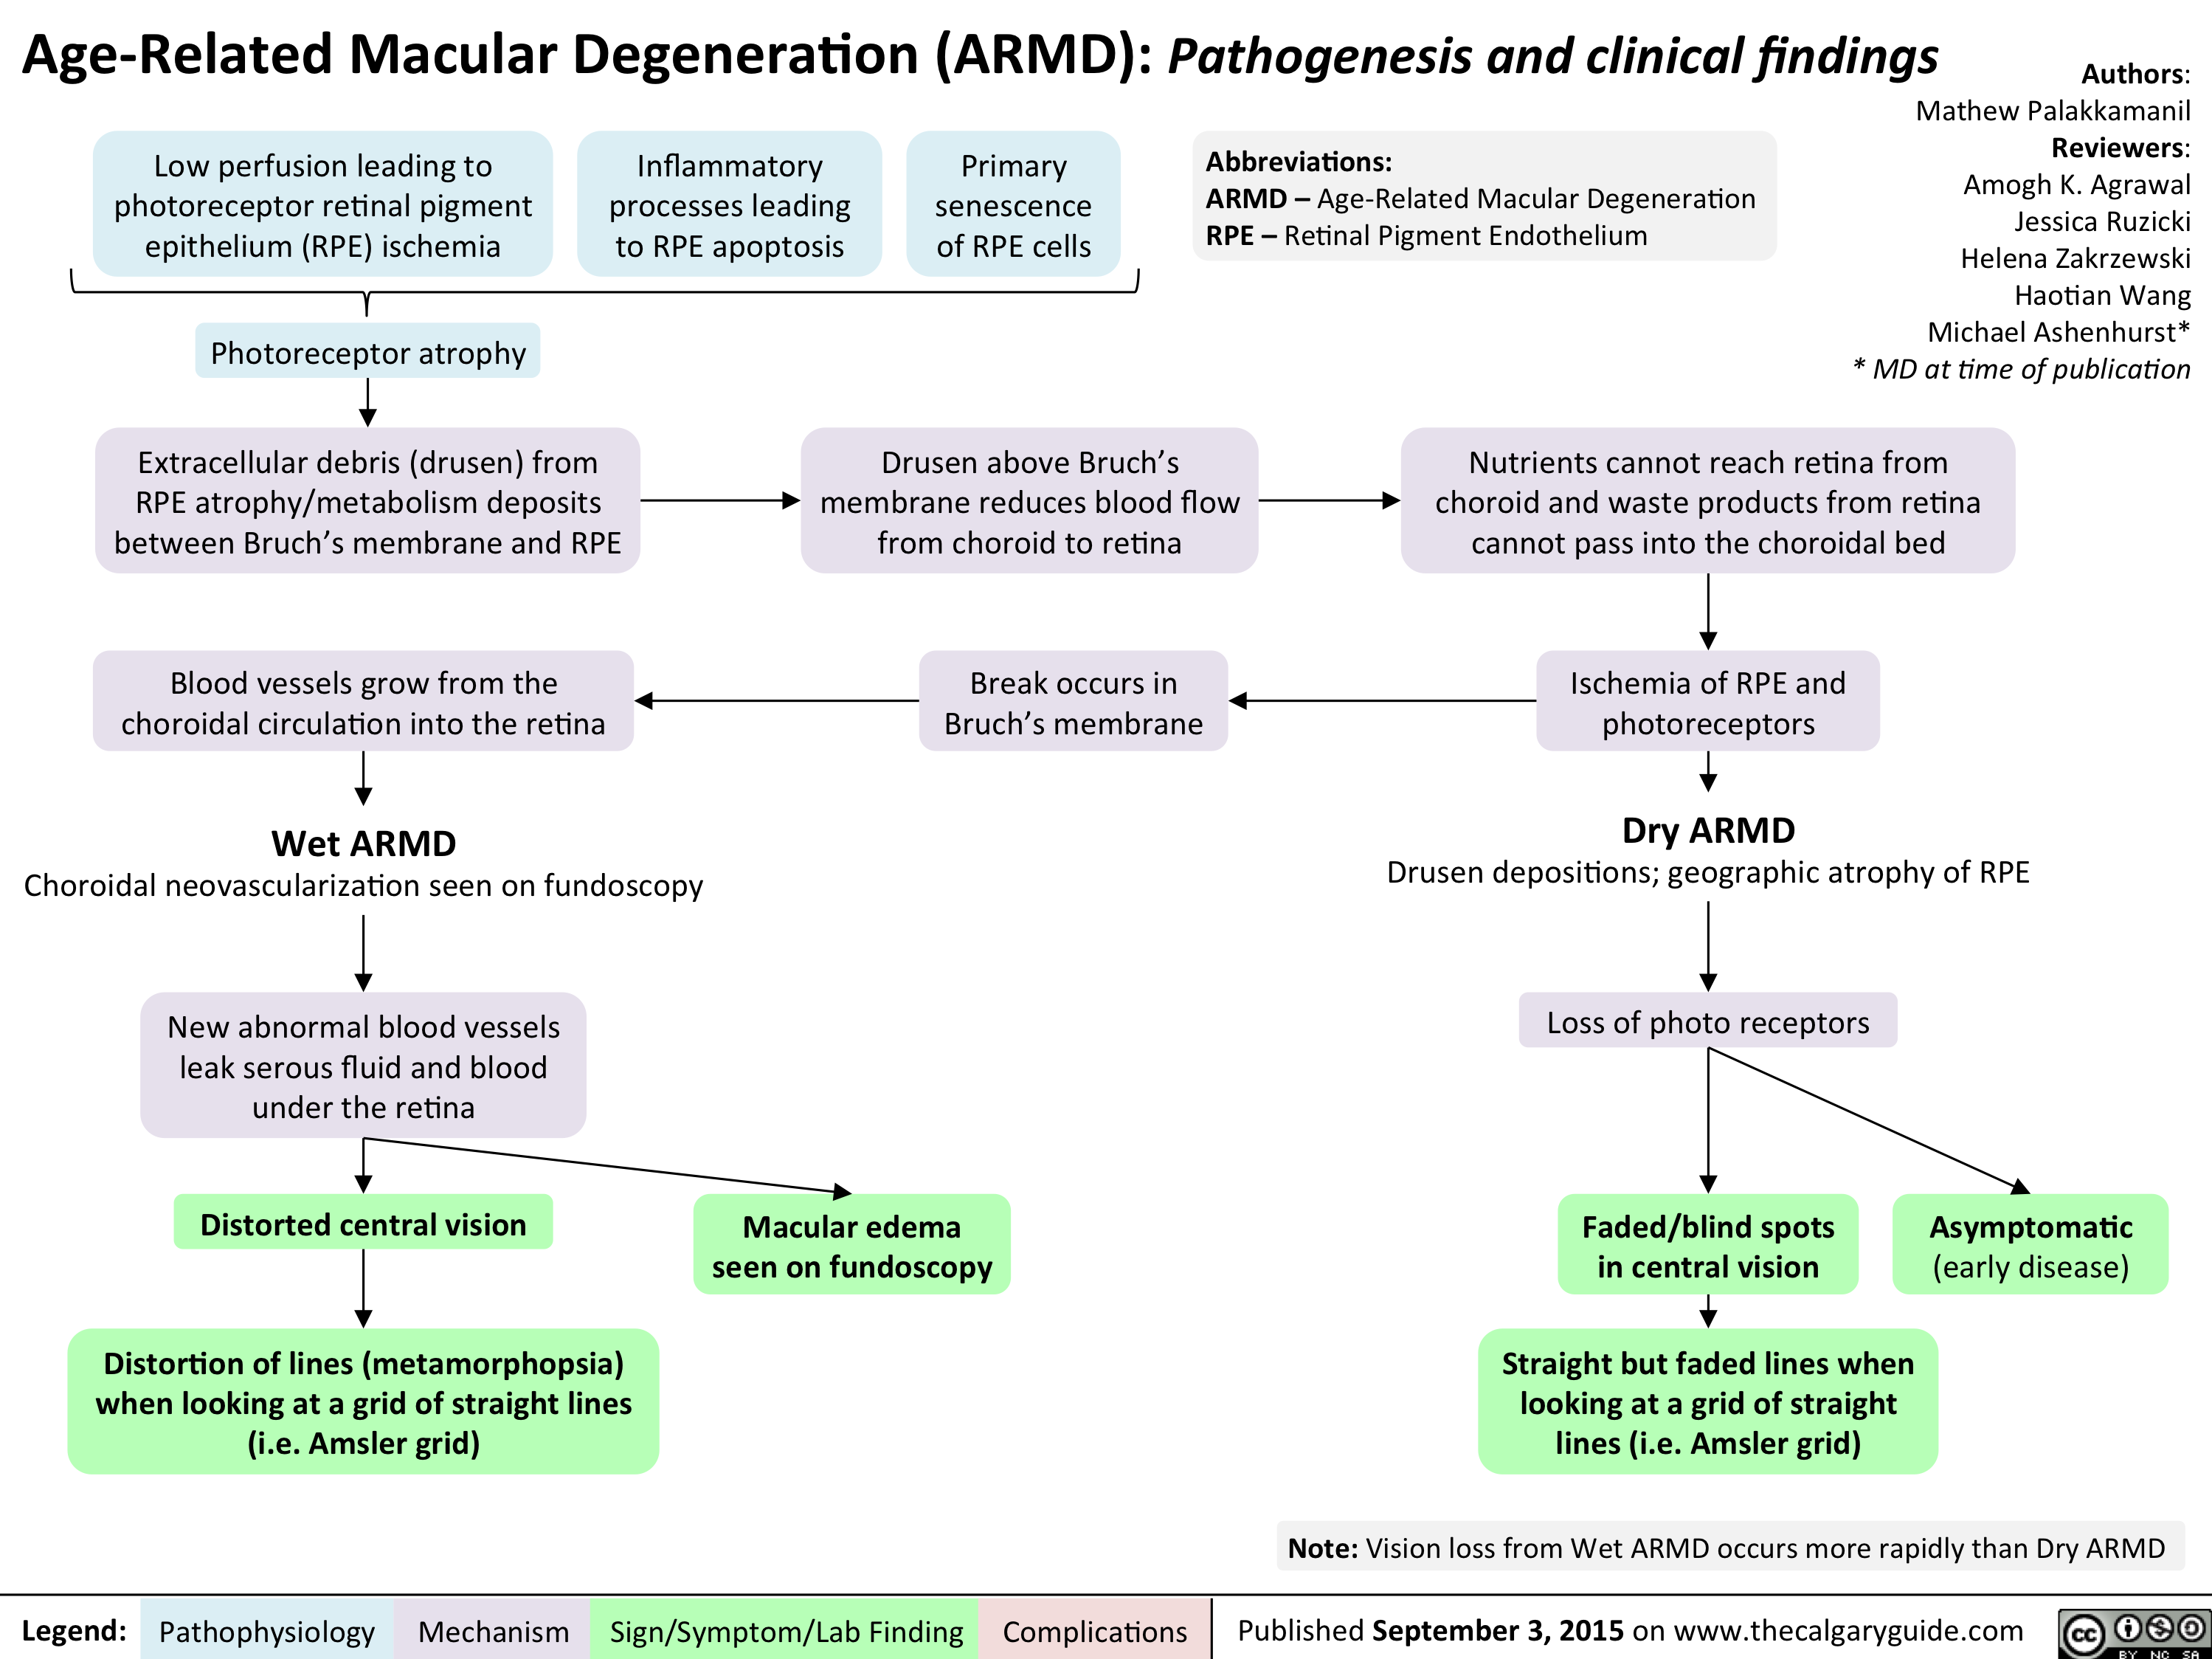 Age Related Macular Degeneration - Pathogenesis and clinical findings